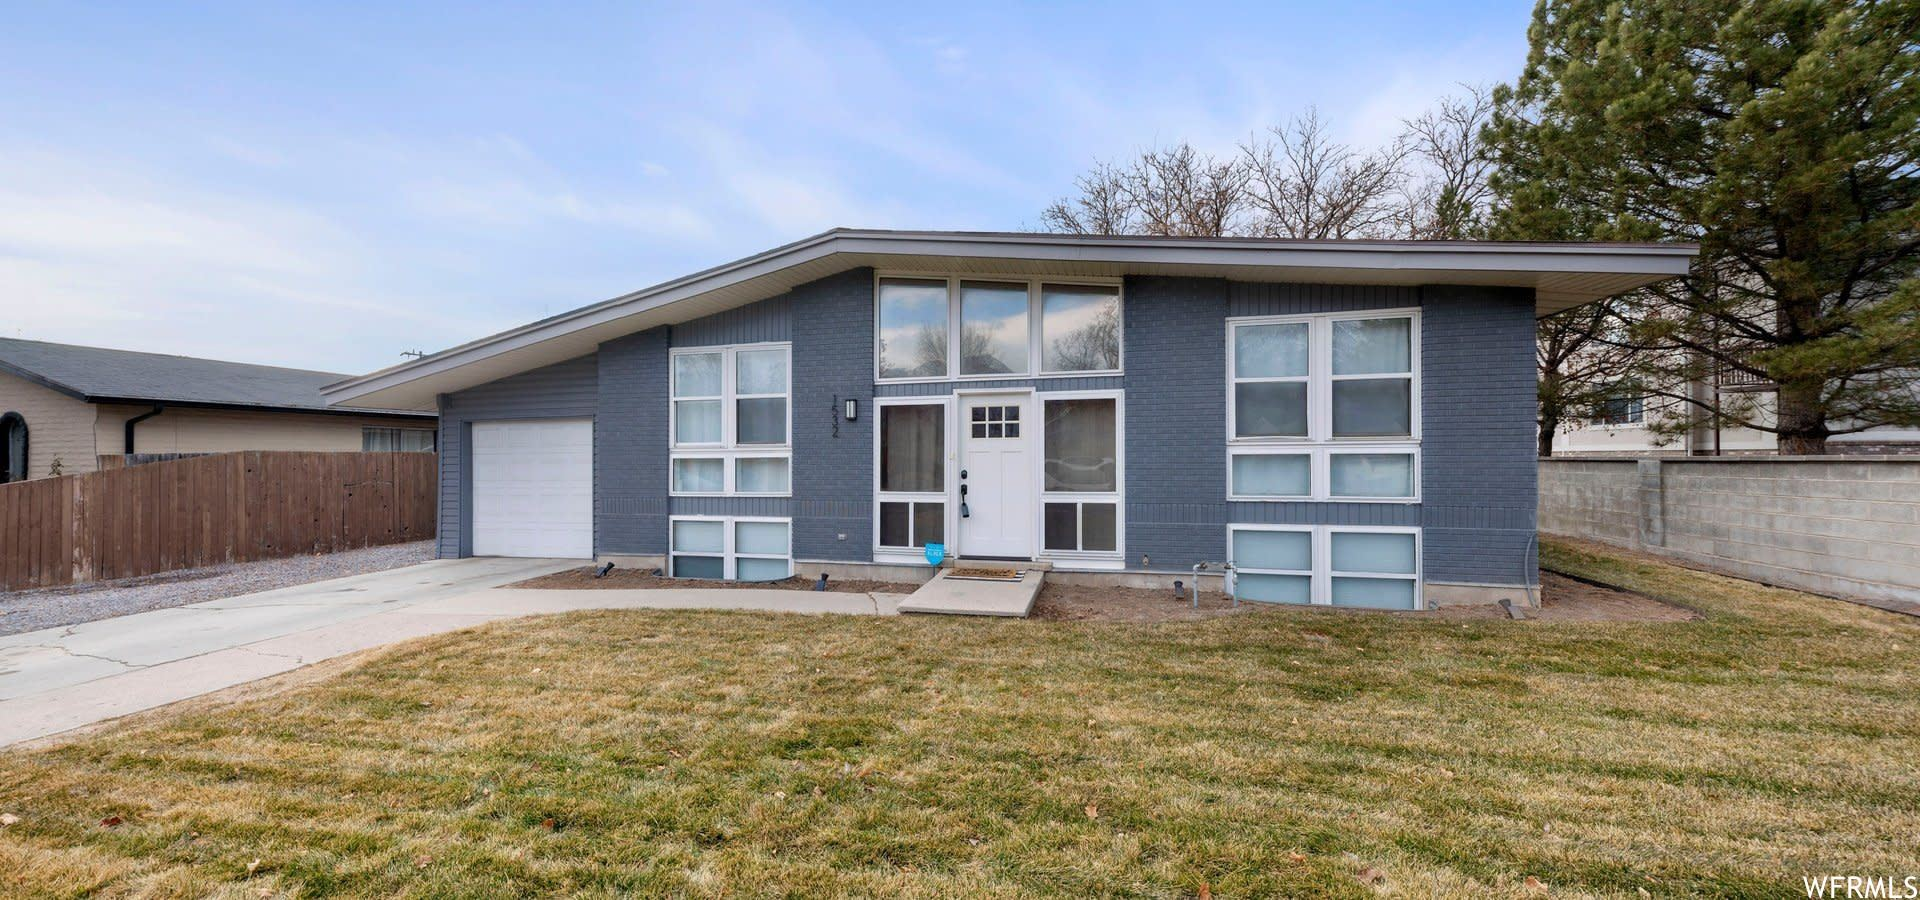 Photo of 1532 S 200 E, Orem, UT 84058 (MLS # 1721462)